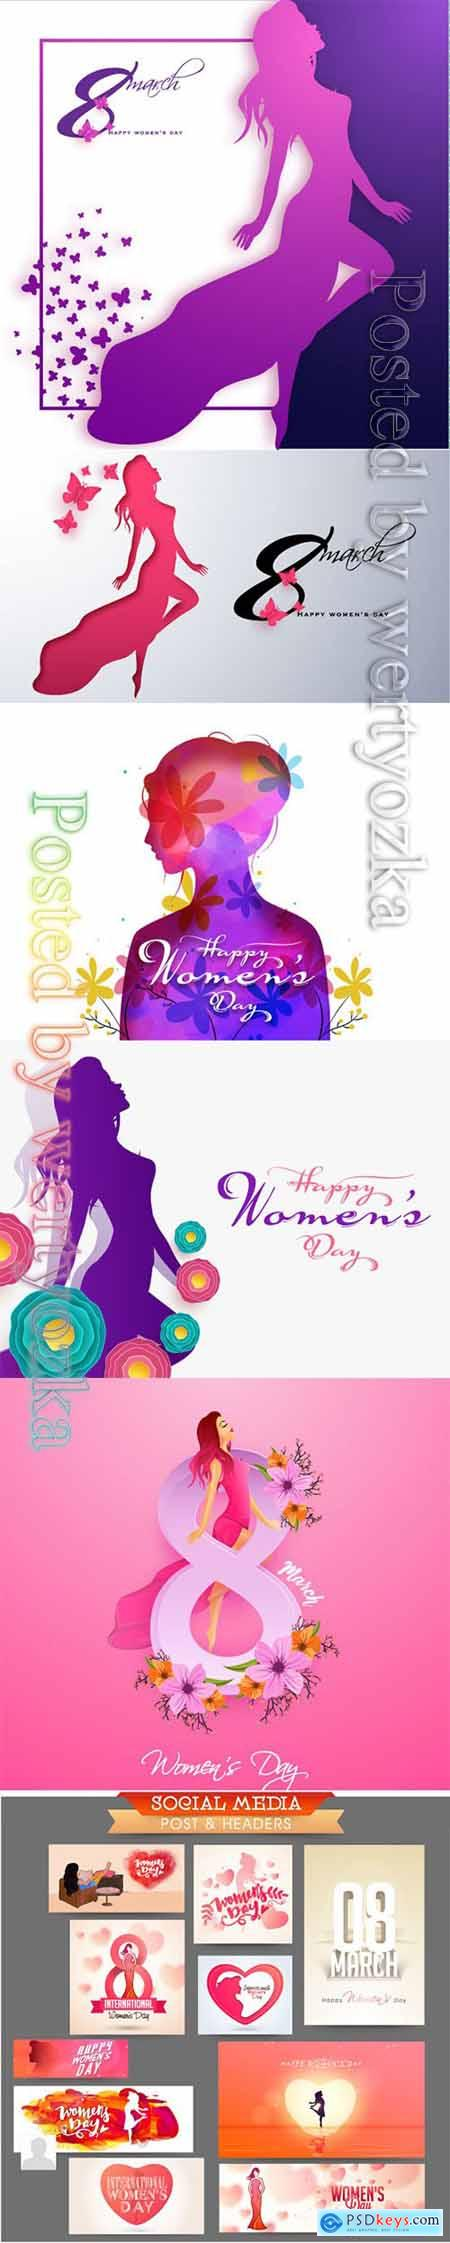 Happy Womens Day greeting card design with beautiful lady